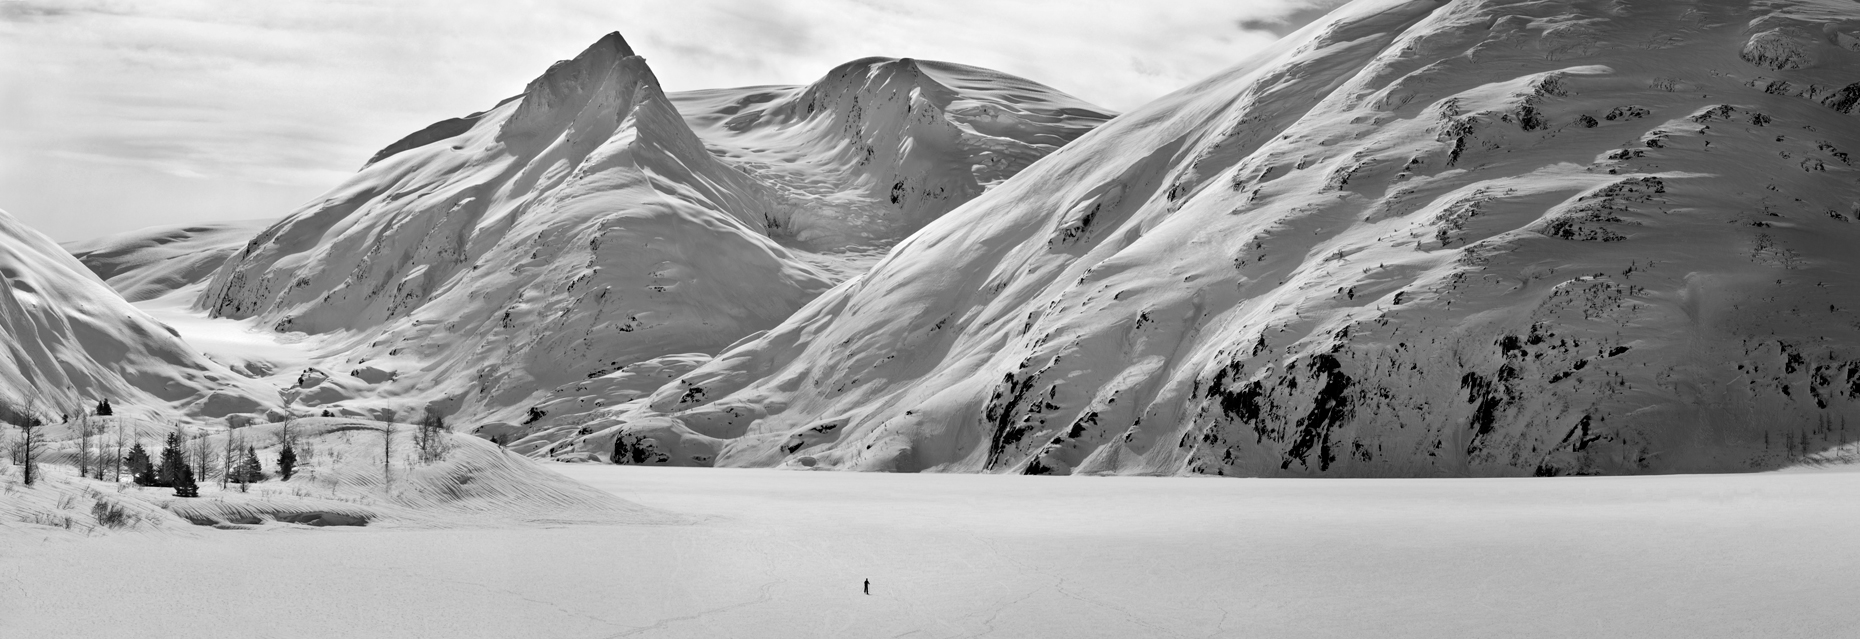 Jon Wyatt Photography - Lone ski-tourer Chugach Mountains, Alaska